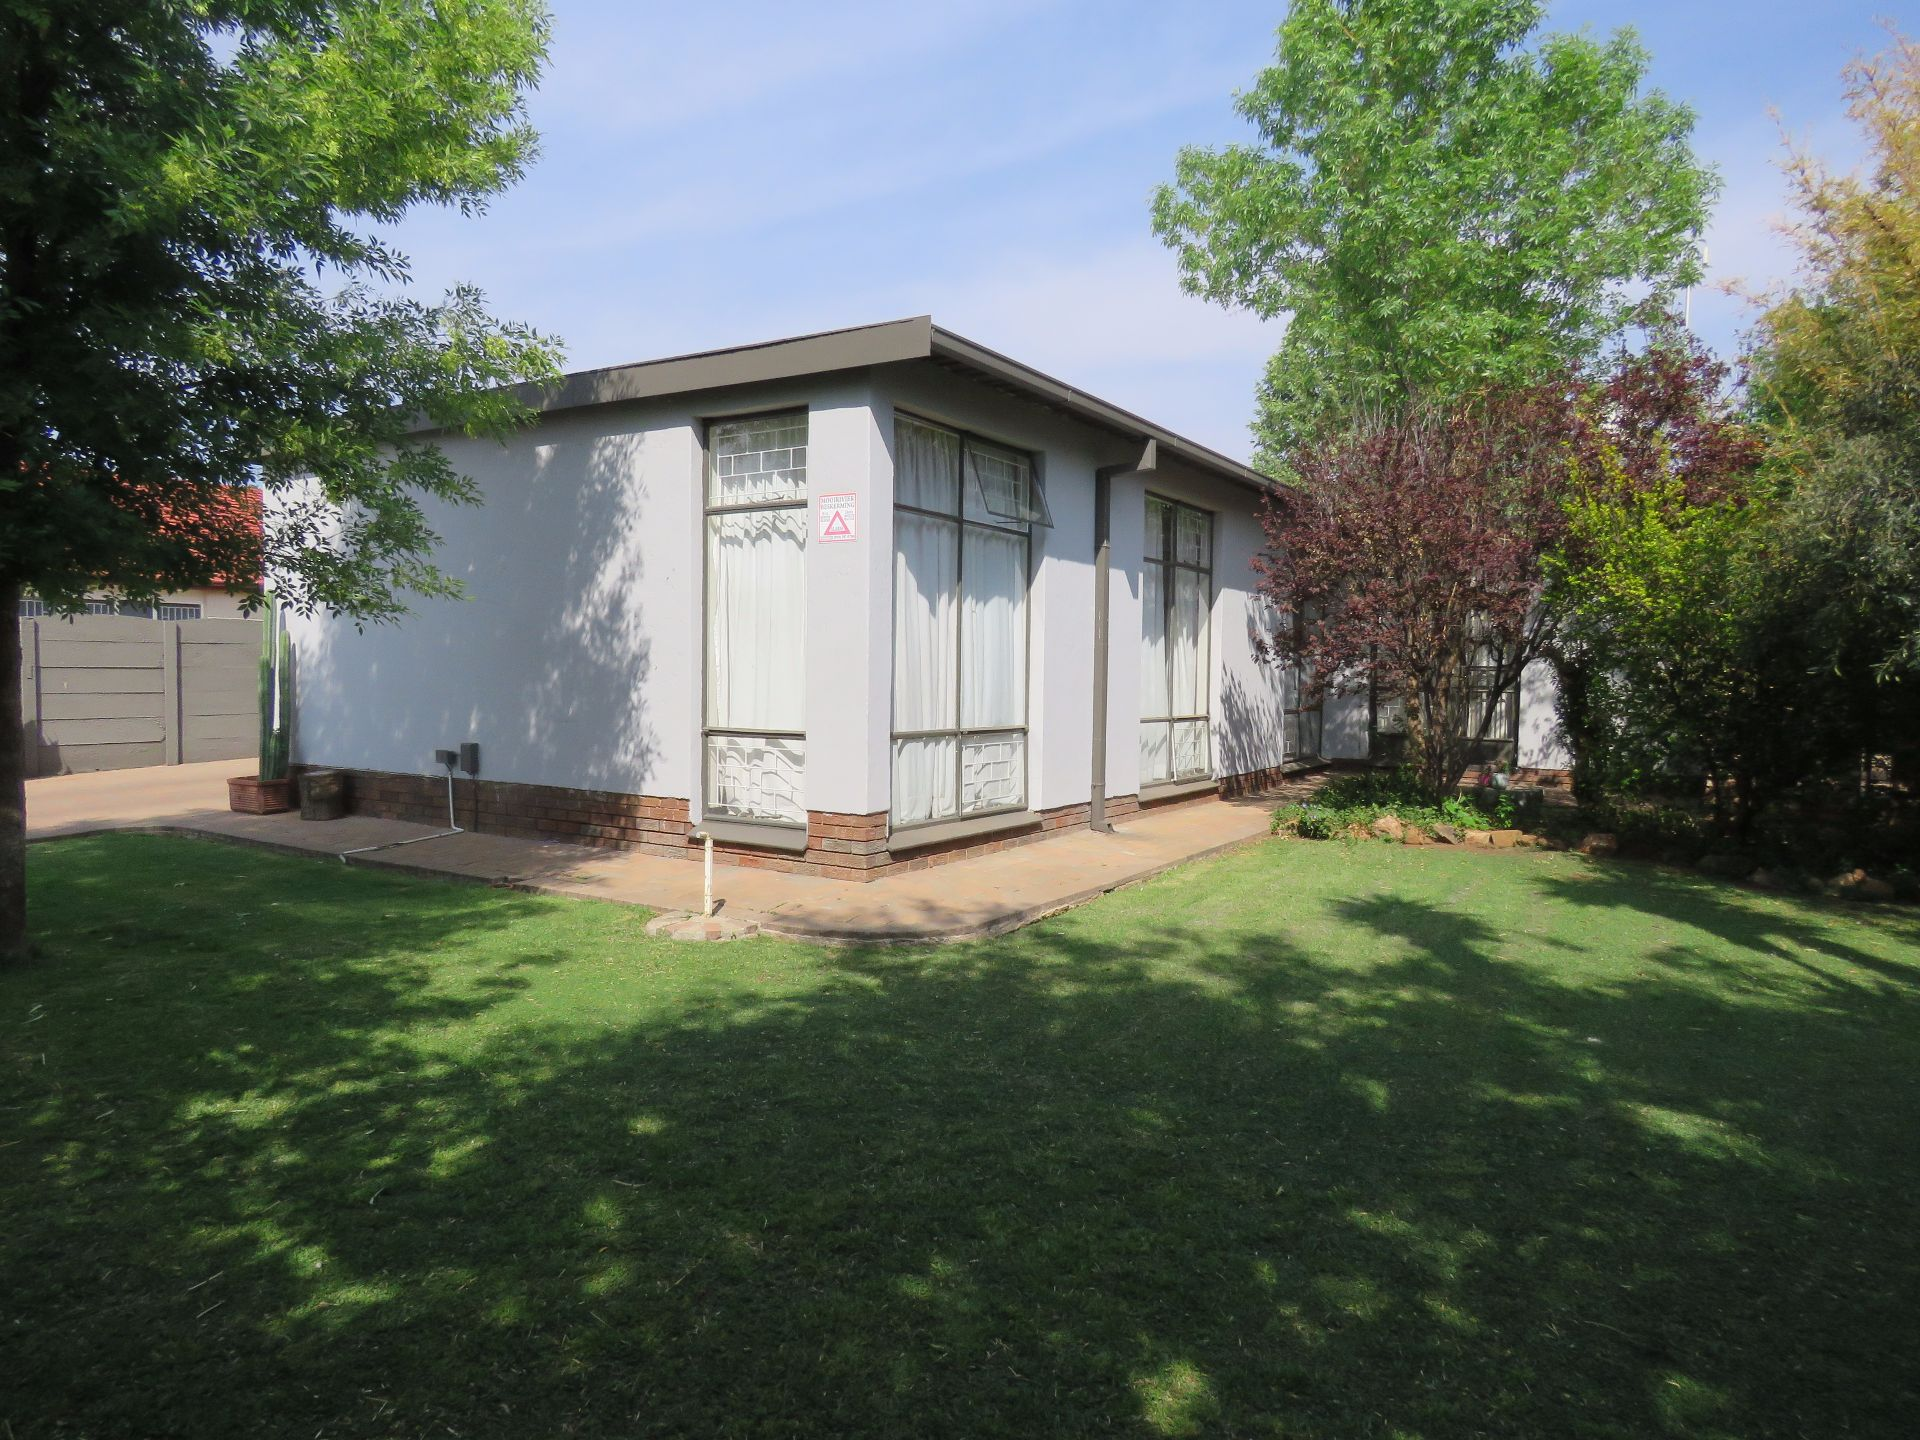 Potchefstroom Central property for sale. Ref No: 13543908. Picture no 1